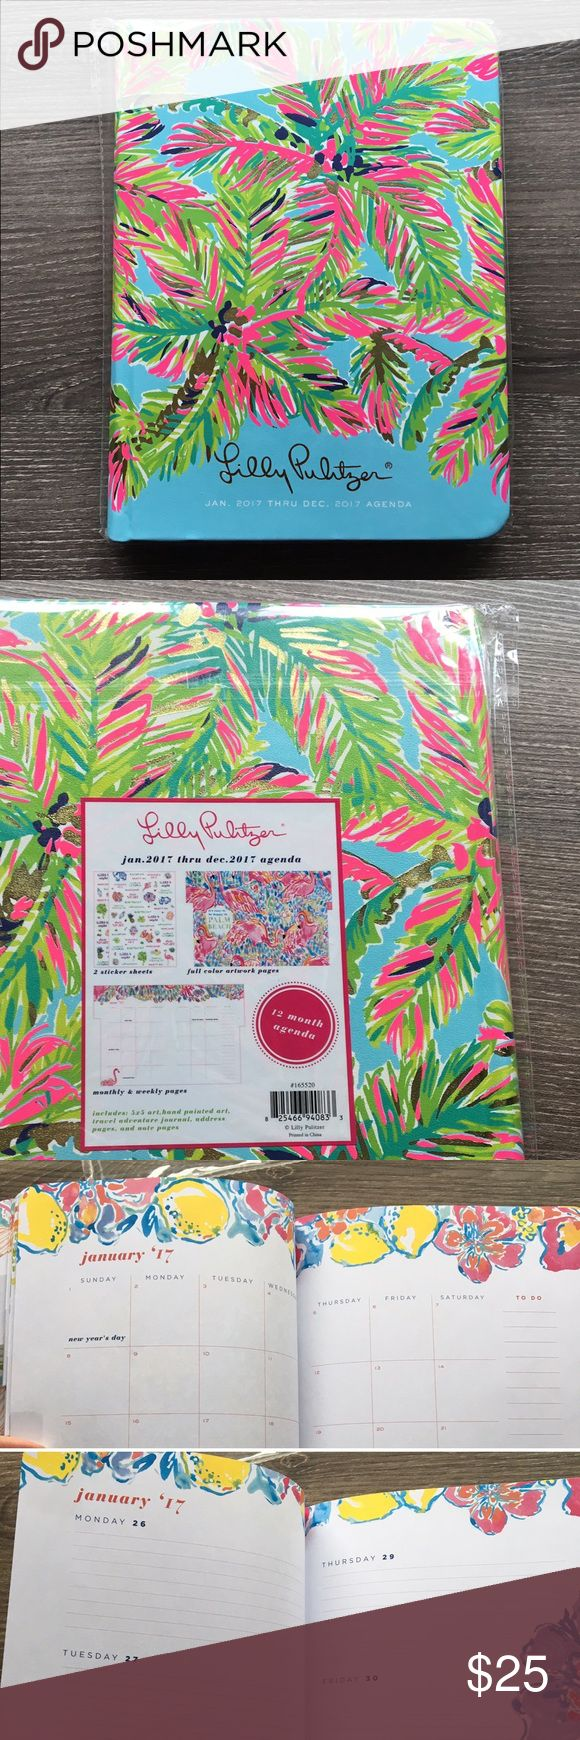 "Lily Pulitzer 2017 Planner 12 month Agenda Brand new hard cover Lilly Pulitzer 12 Month Agenda in ""Island Time"" - January 2017 through December 2017.  - Yearly, monthly and weekly calendar pages - Stickers, hand painted graphics, travel guide, dates to remember & journal section - Easy colored Mylar tabs - Durable hard leatherette cover with a reinforced binding feels luxurious  - Gold foil and neon accents  - Measures 9"" x 6 3/4"" x 3/4 - In original plastic wrap, only opened to take a few…"